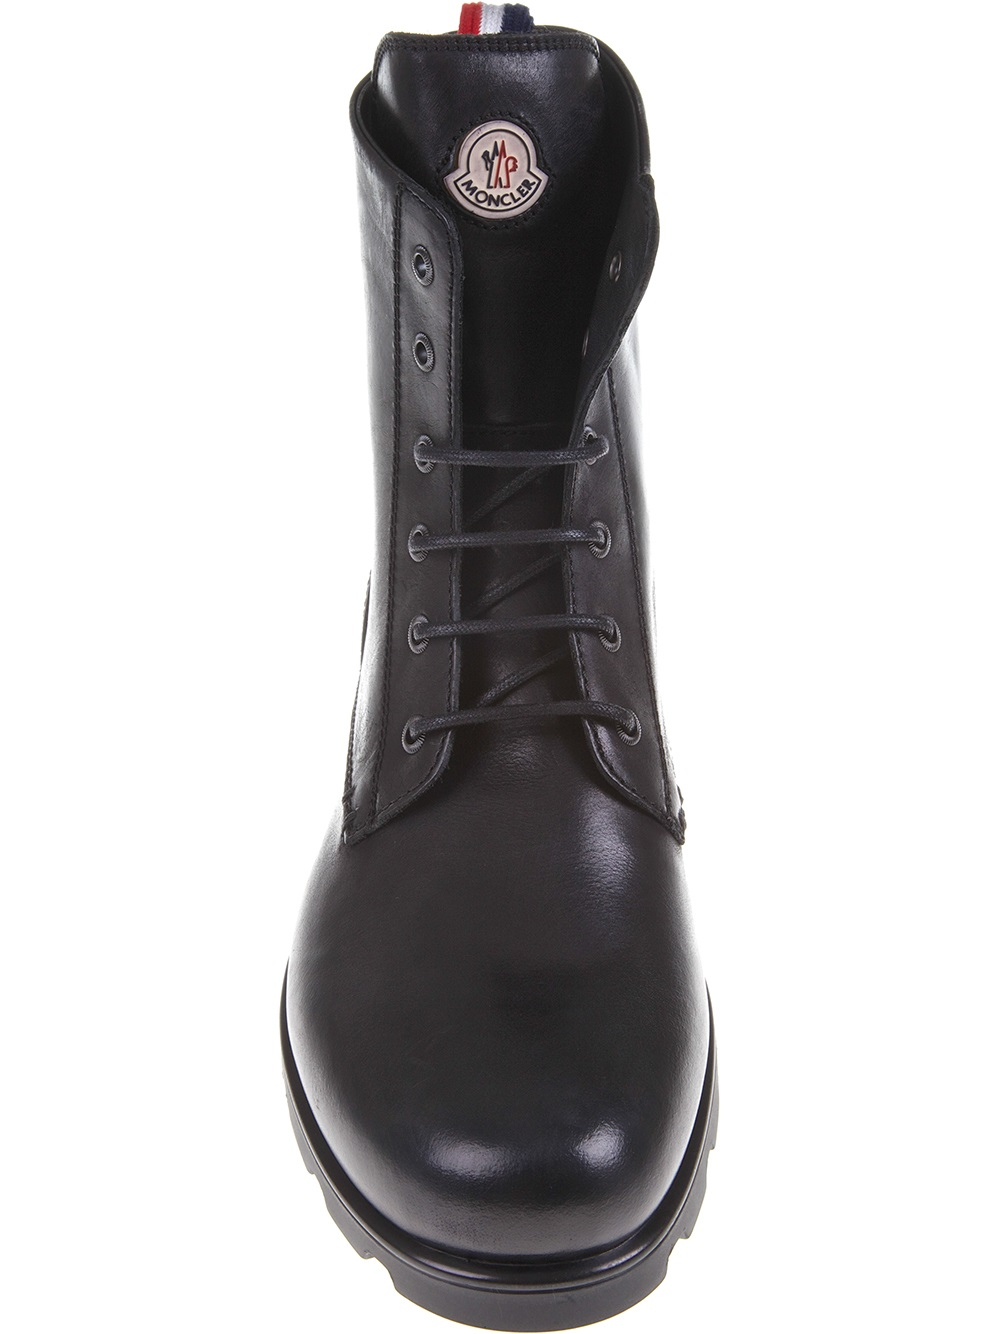 moncler mens hiking boots